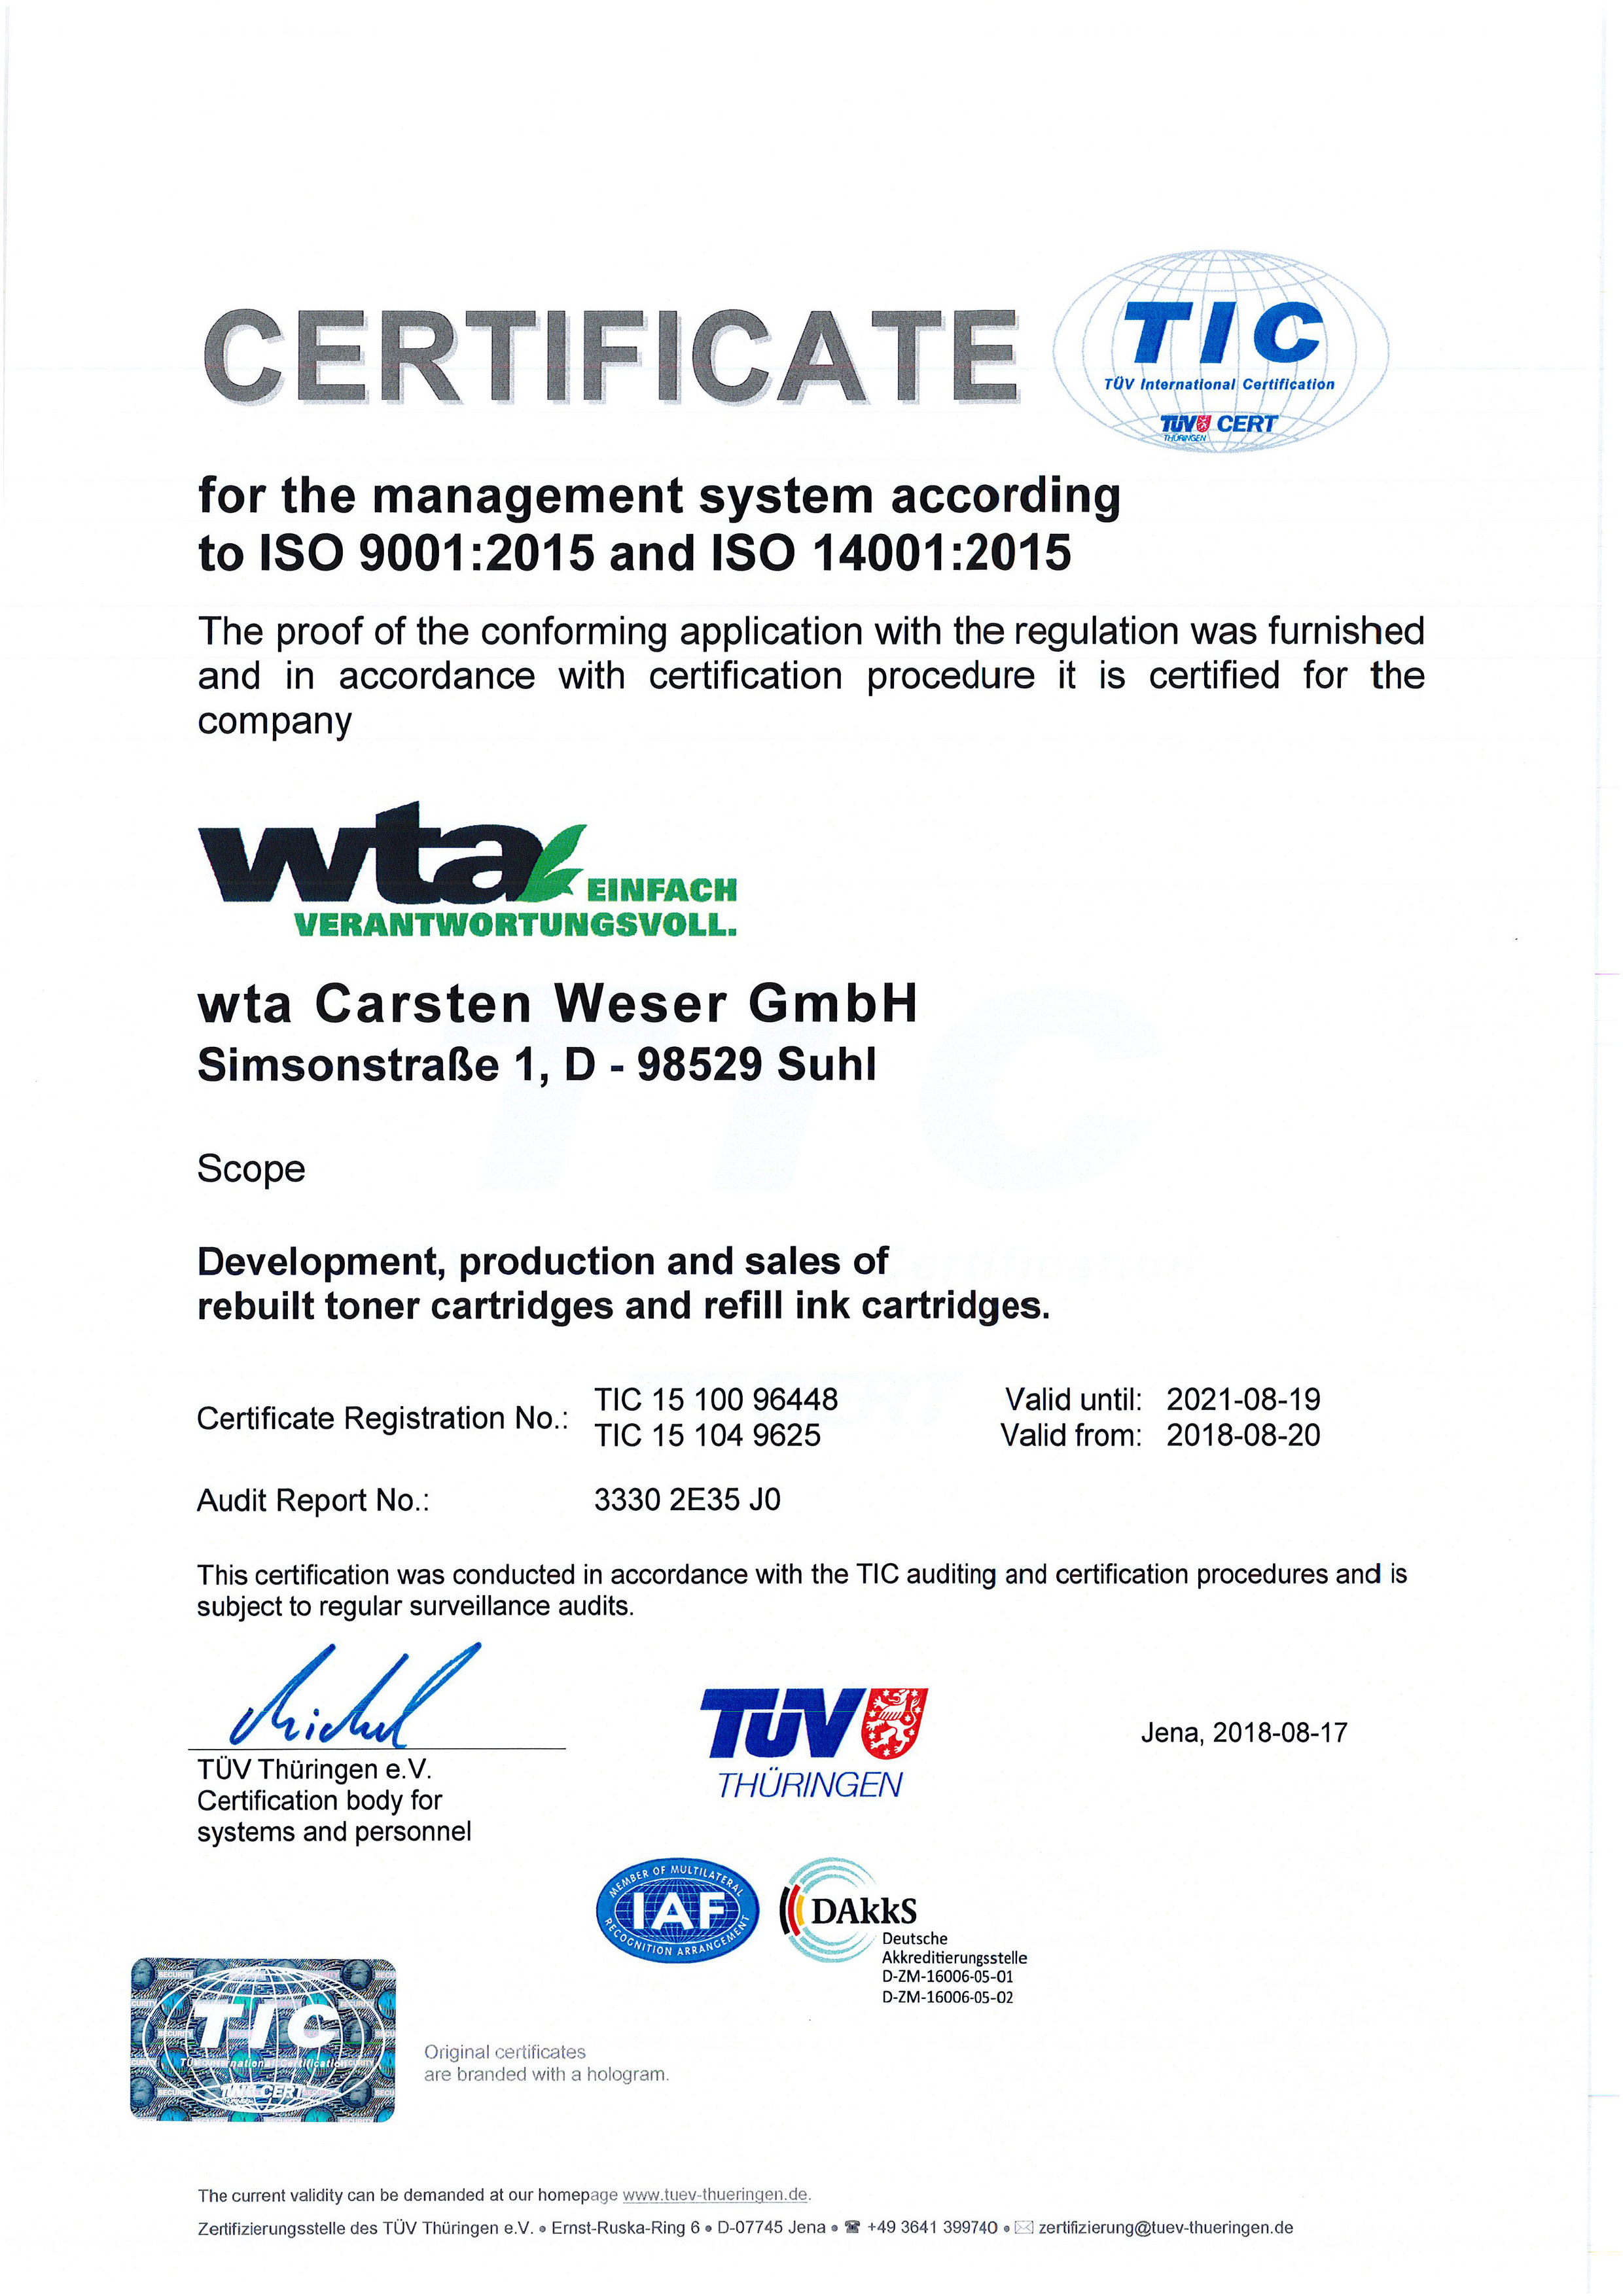 Certificate of the company wta Suhl for the management system according to ISO 9001:2008 and ISO 14001:2004